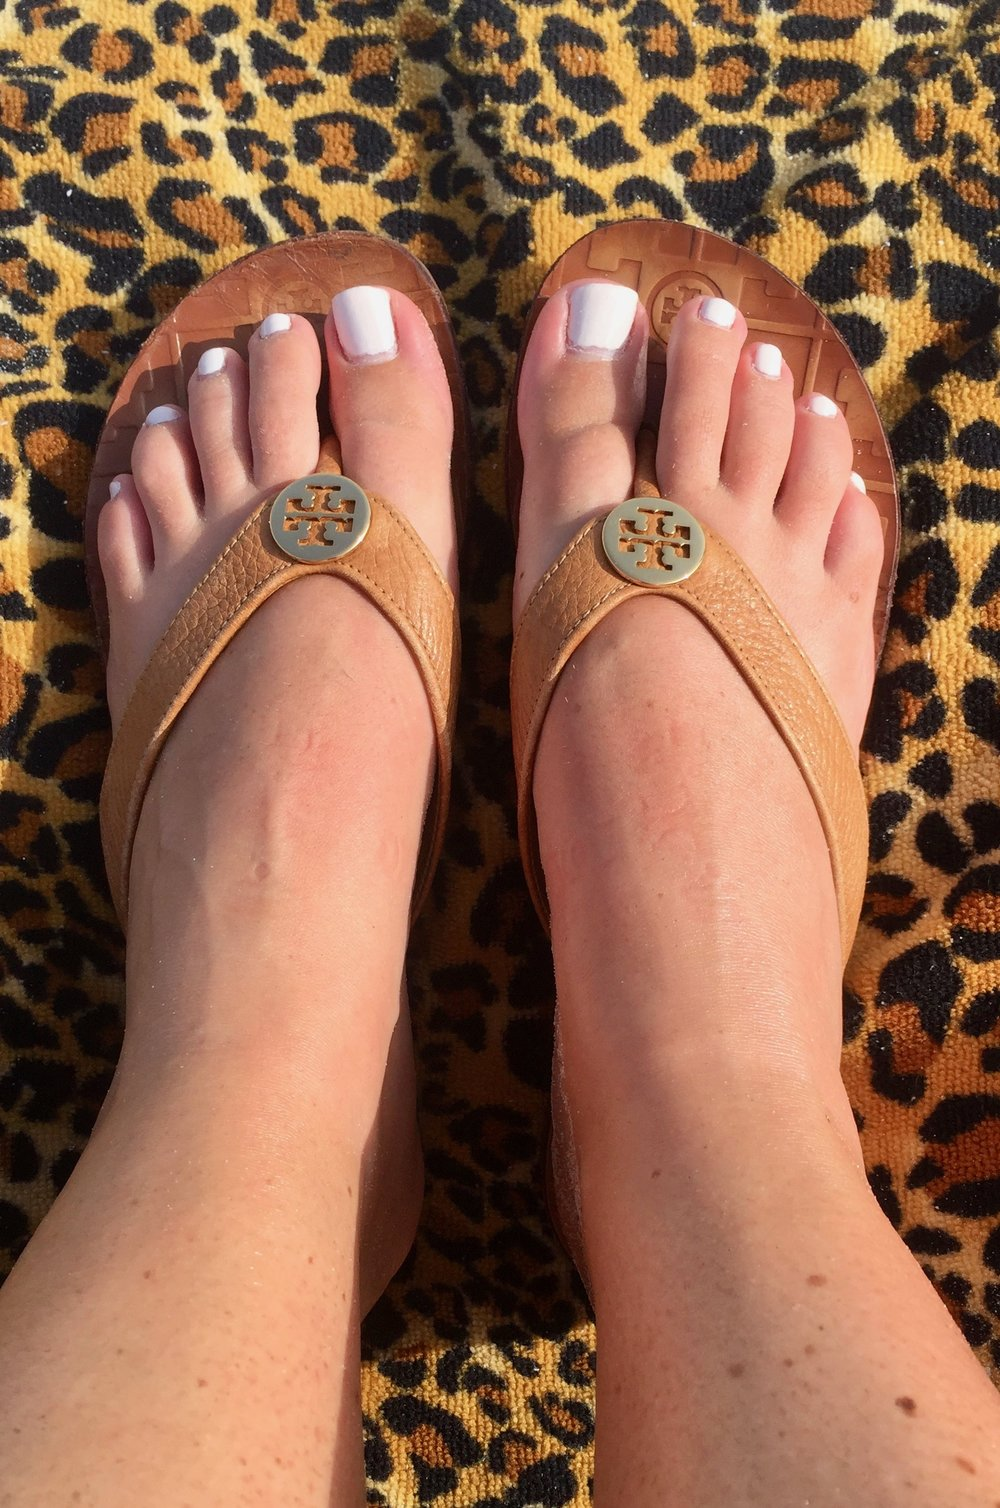 Everybody always talks about the    Miller sandals    (which are great), but these    Monroe sandals    are actually my favorite pair of sandals by Tory Burch!